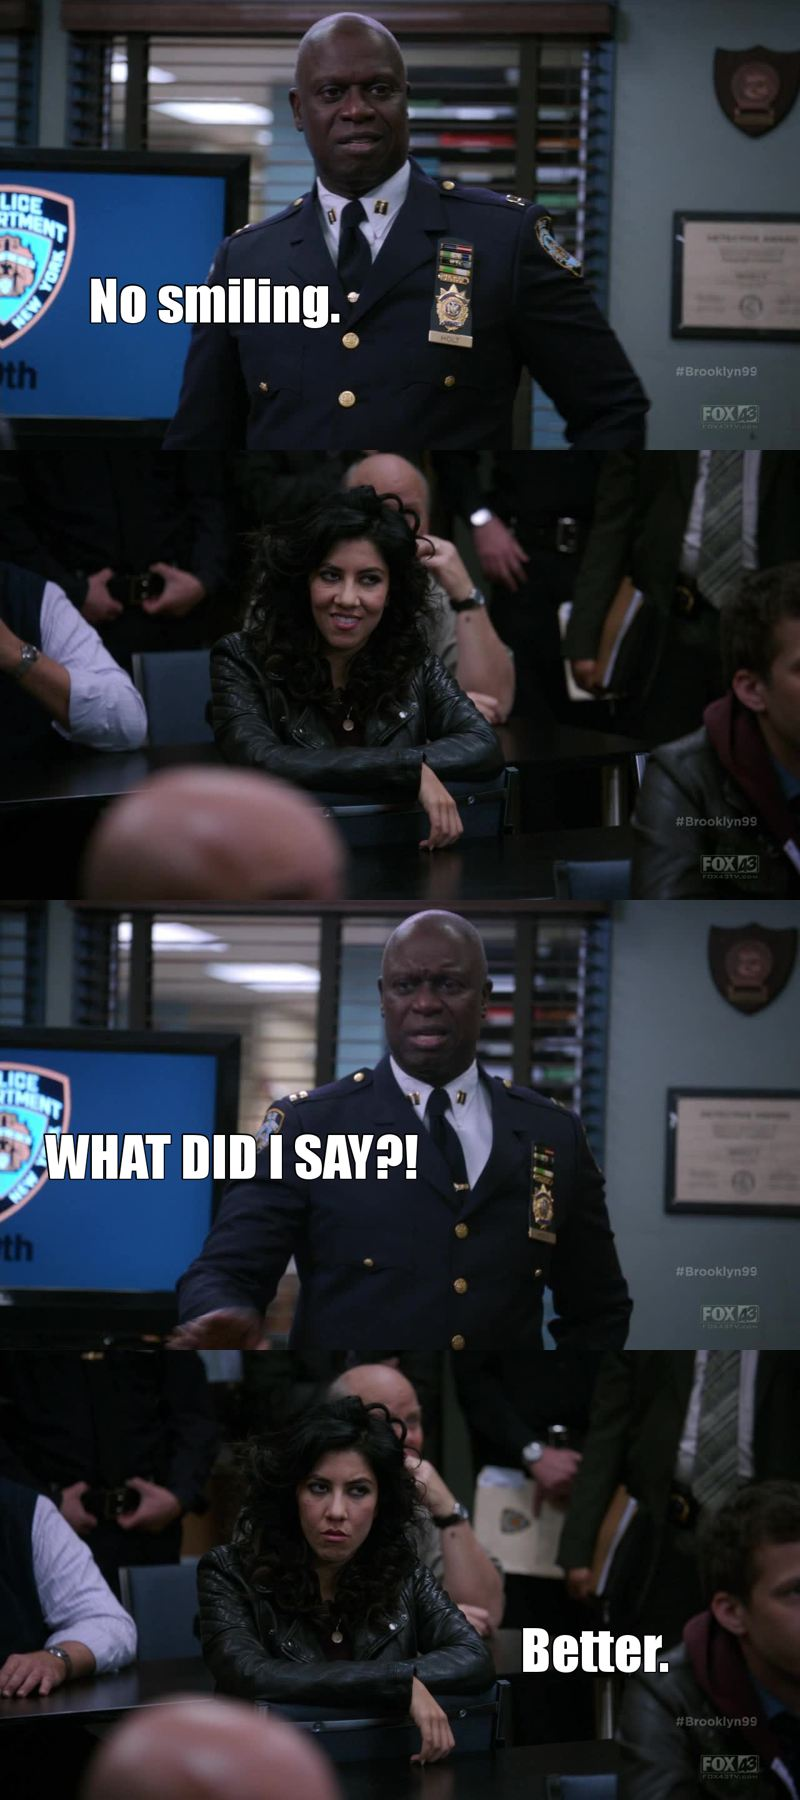 Captain said NO smile Rosa. You more than anyone else should have respect that.